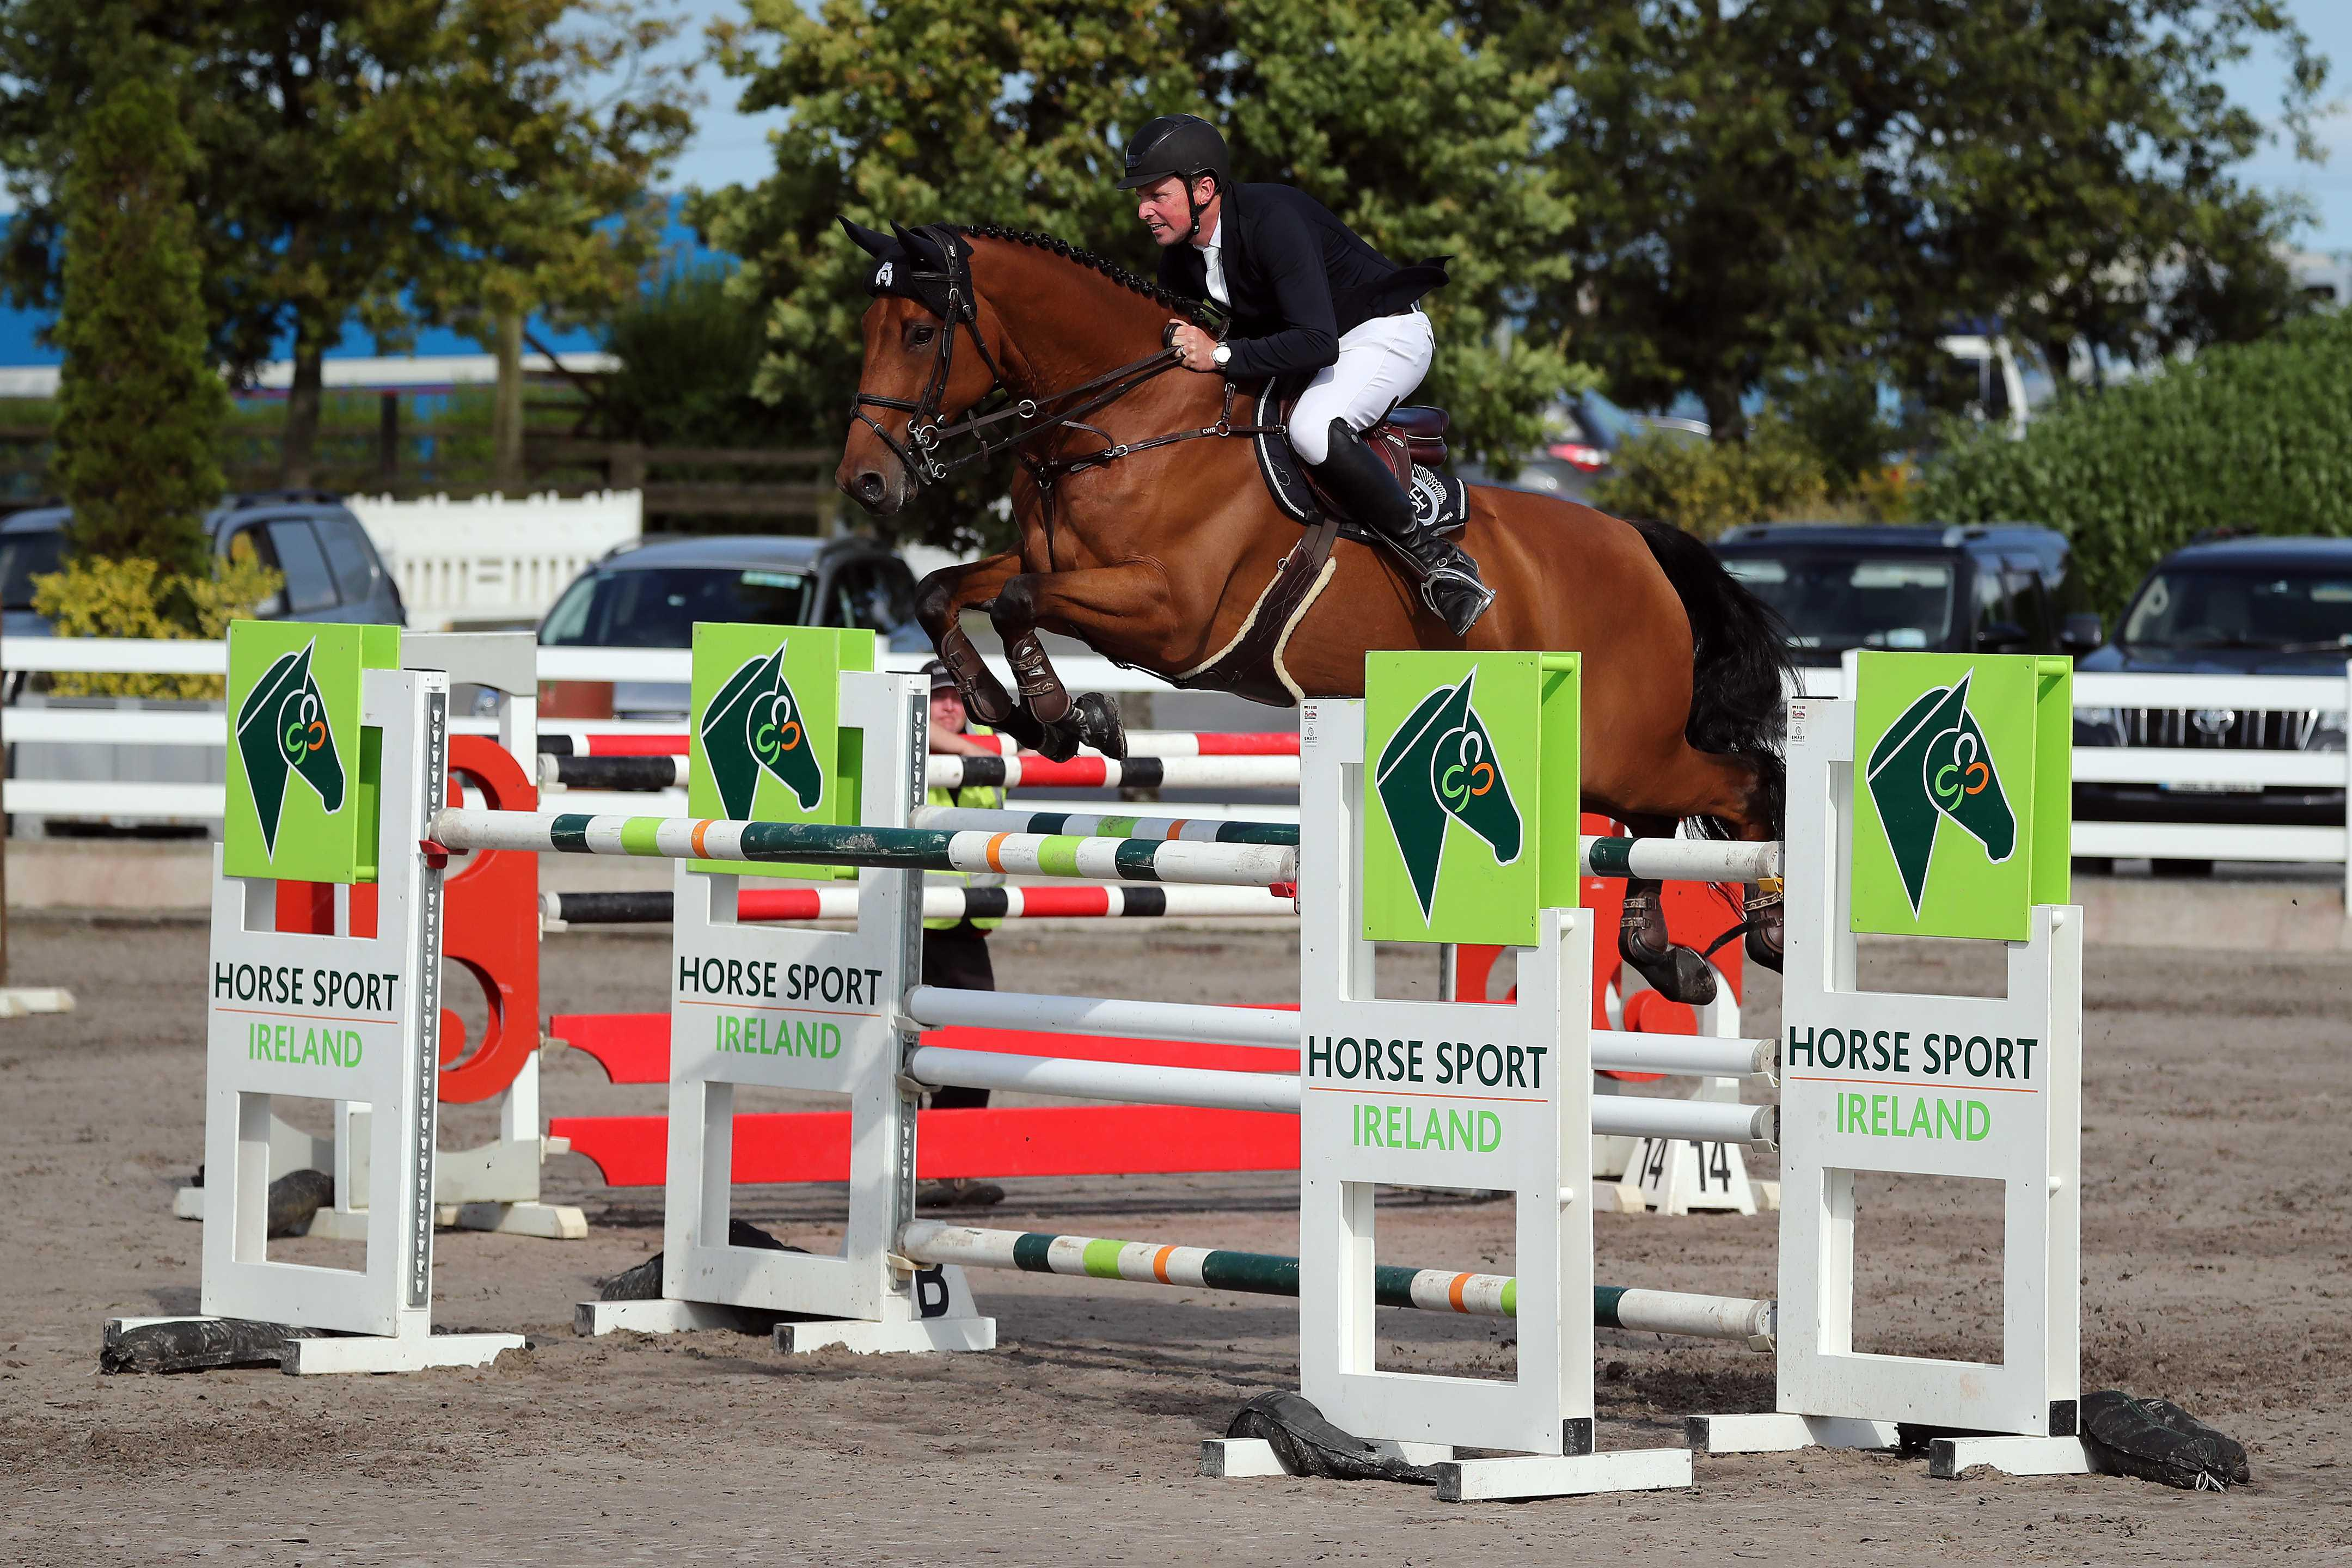 SHOW JUMPING: O'Neill gives it Wellie to win